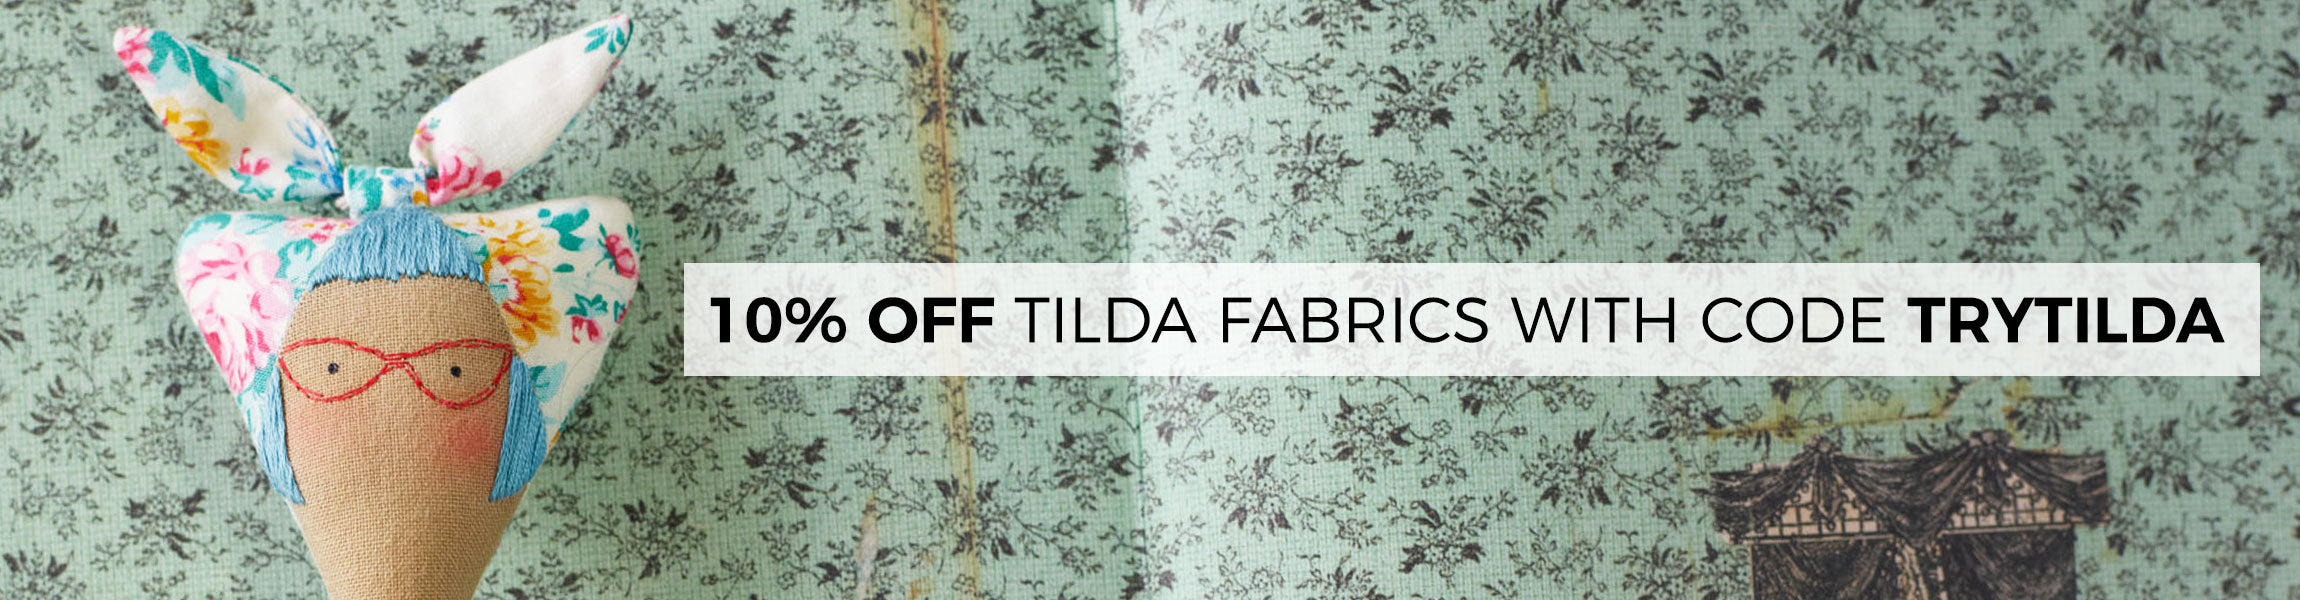 There's no better time to try out Tilda Fabrics than now! Coupon code TRYTILDA will save you 10% off all in-stock Tilda Fabrics.